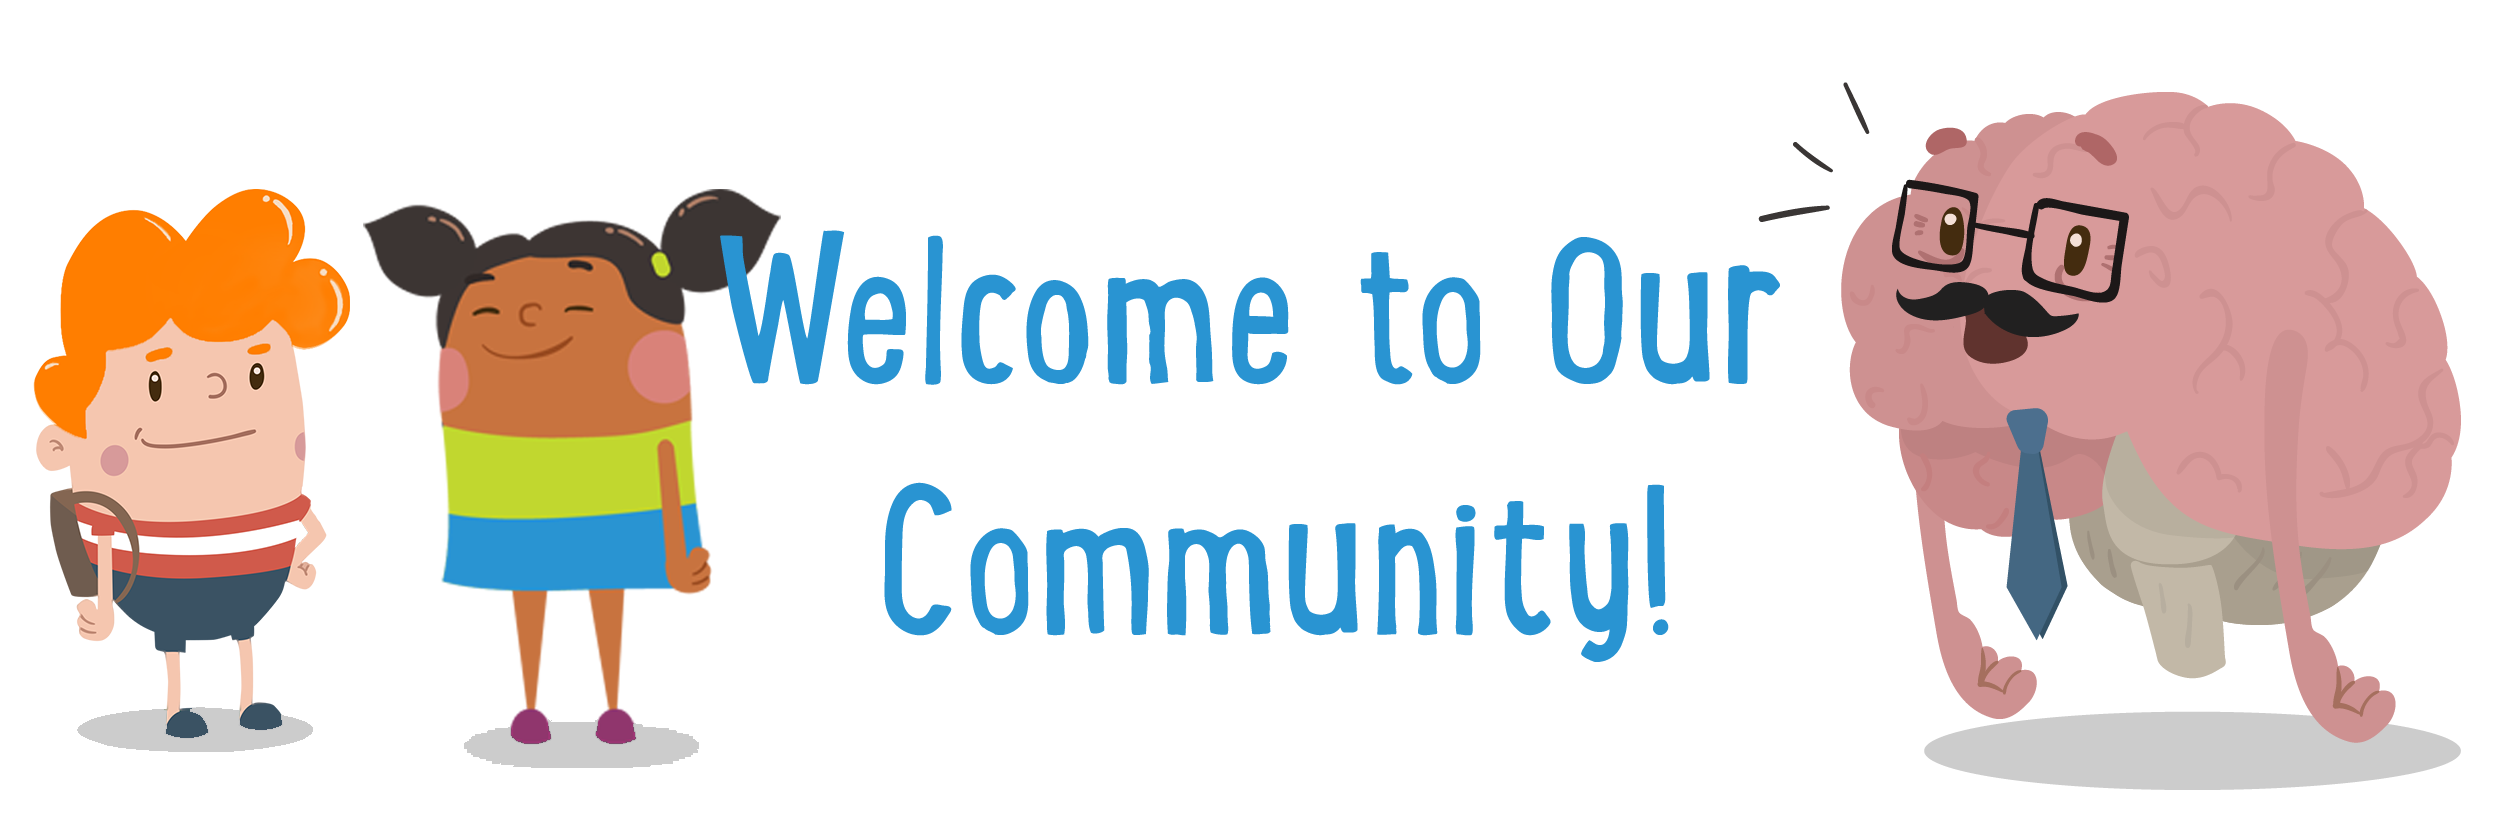 Welcome to Our Community